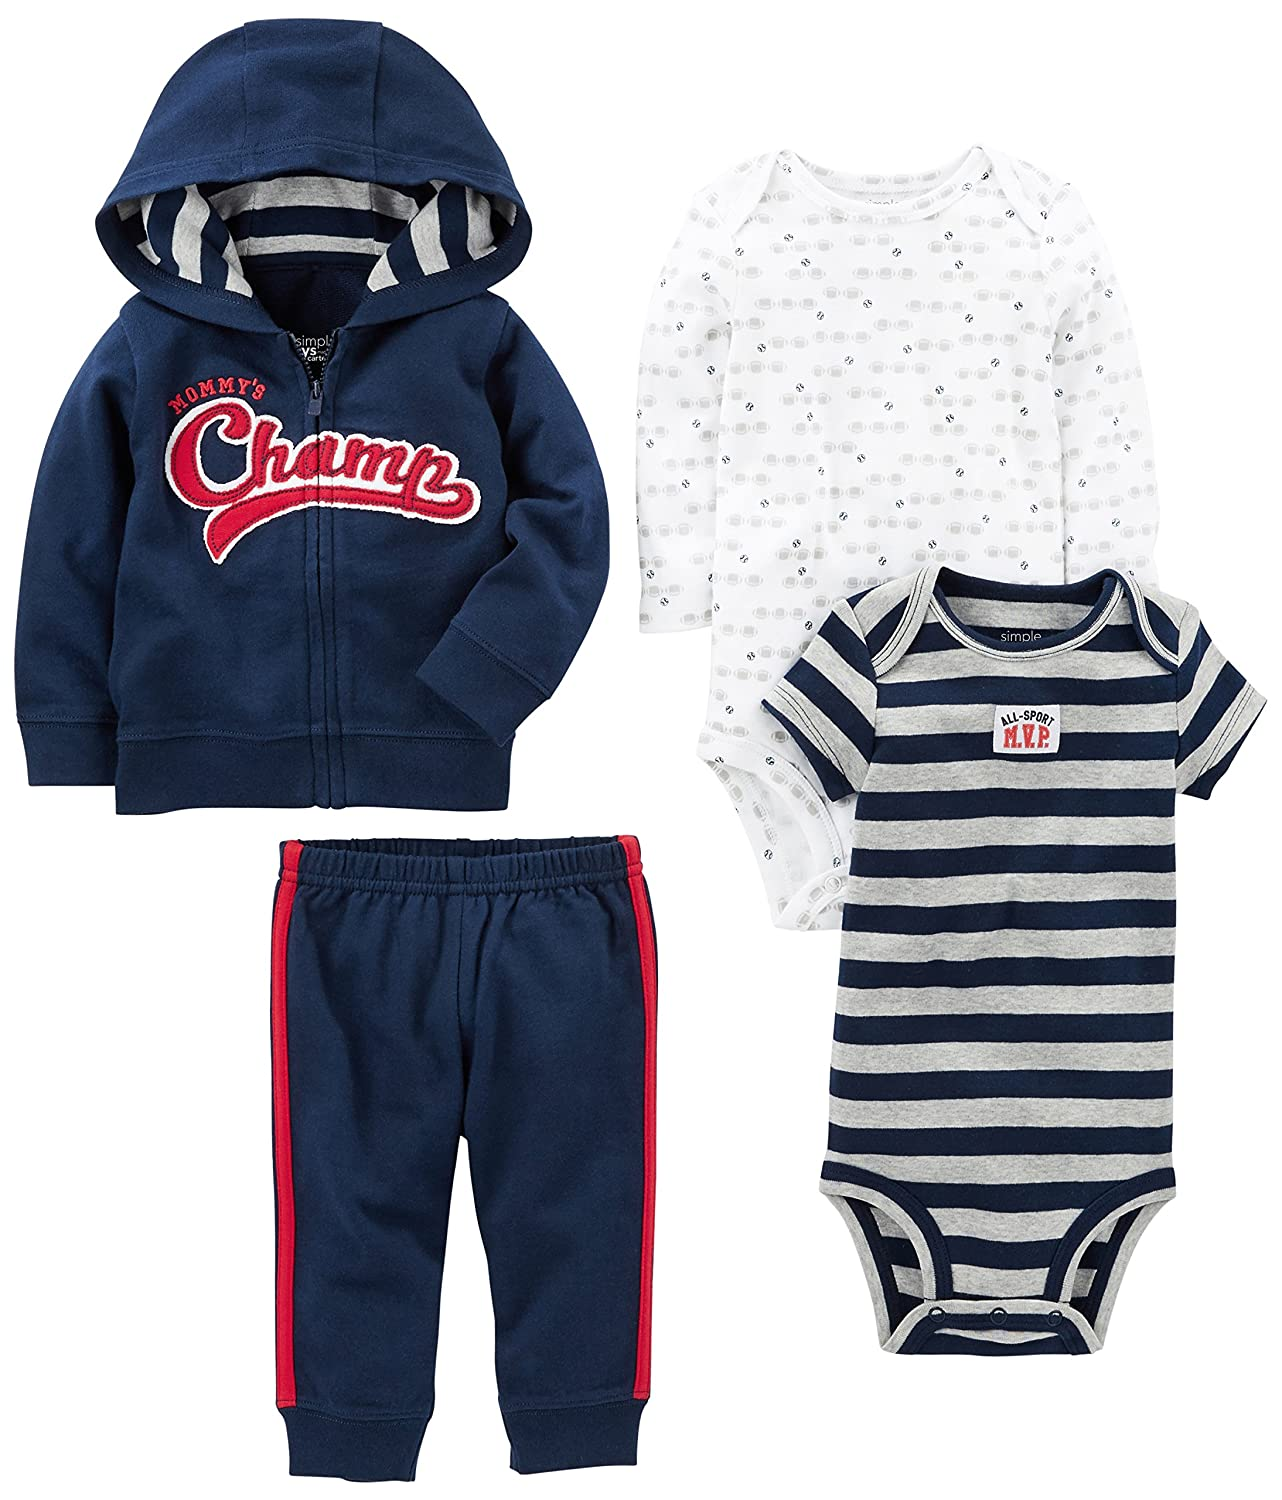 Simple Joys by Carters Baby Boys 4-Piece Jacket, Pant, and Bodysuit Set